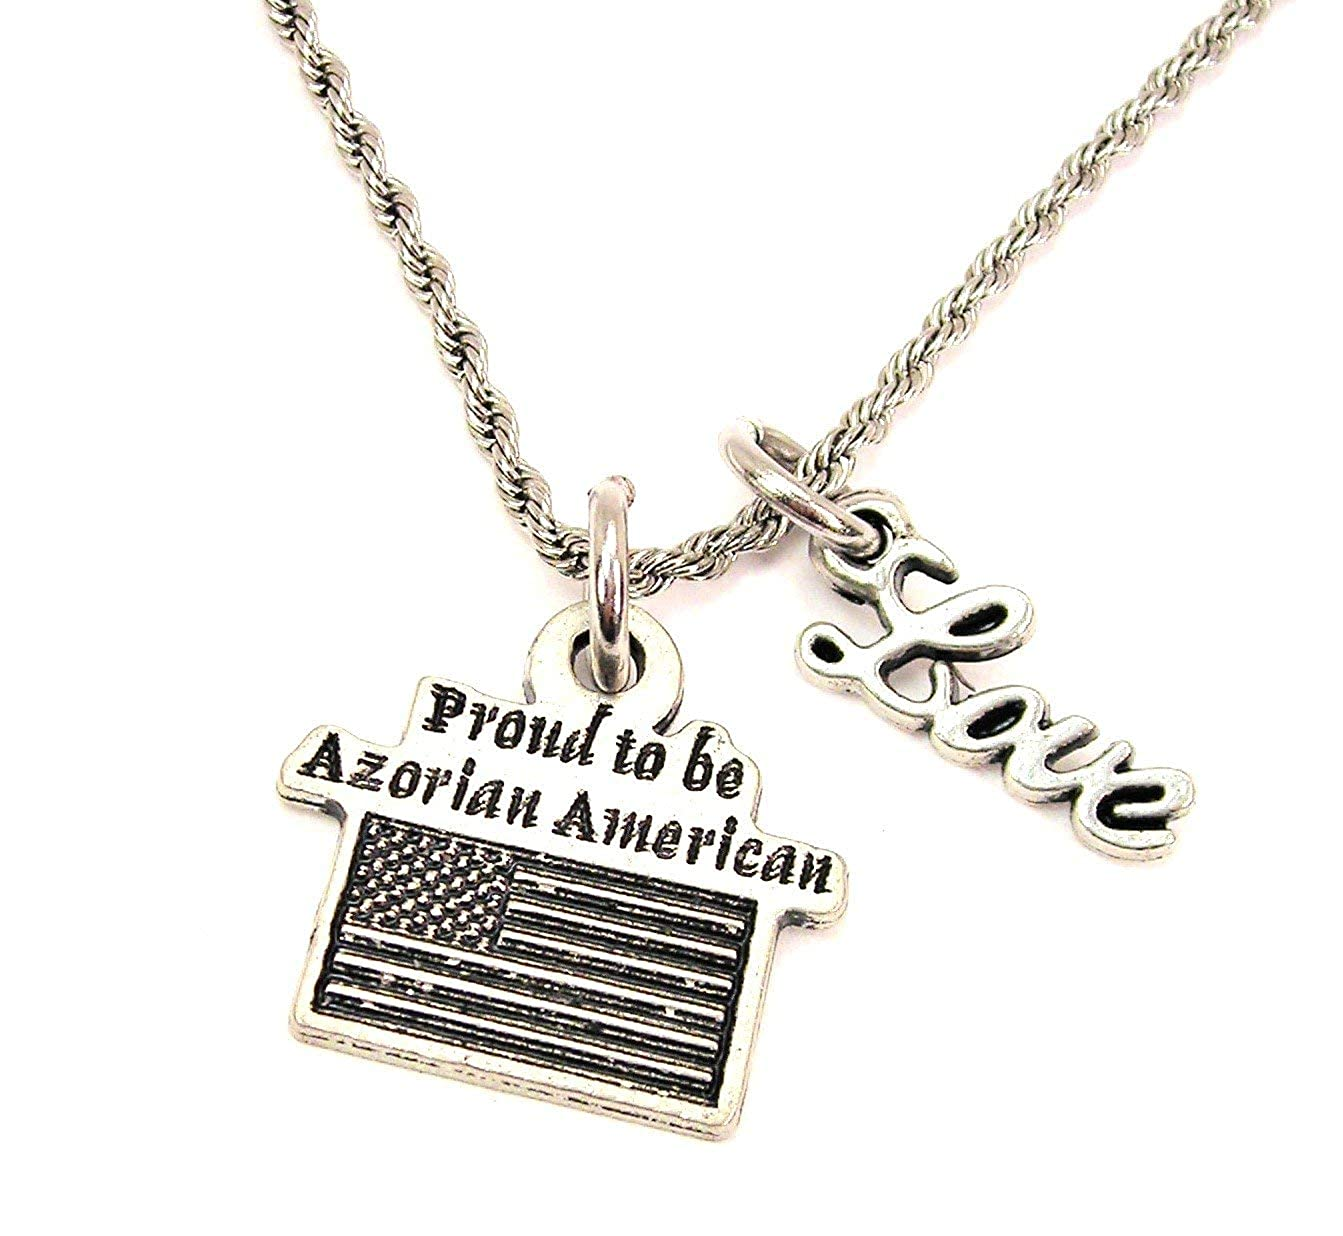 ChubbyChicoCharms Proud to Be Azorean American Stainless Steel Rope Chain Necklace with Cursive Love Accent